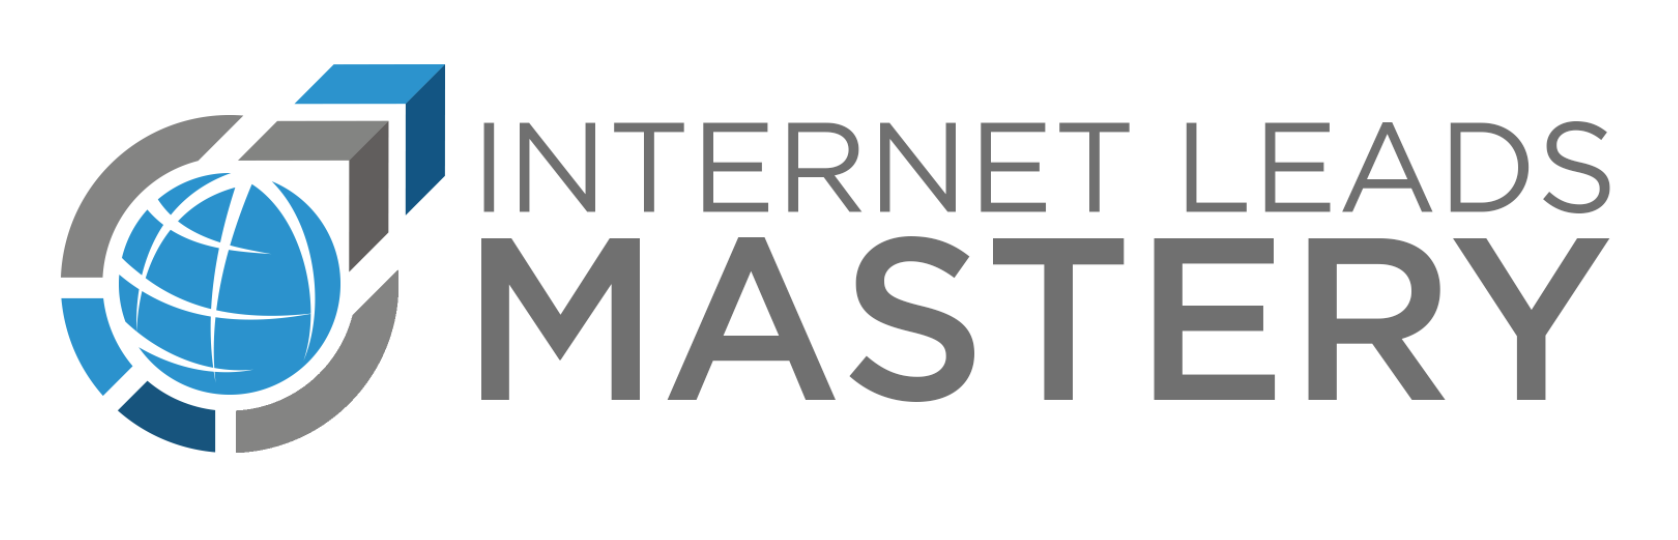 Internet Leads Mastery